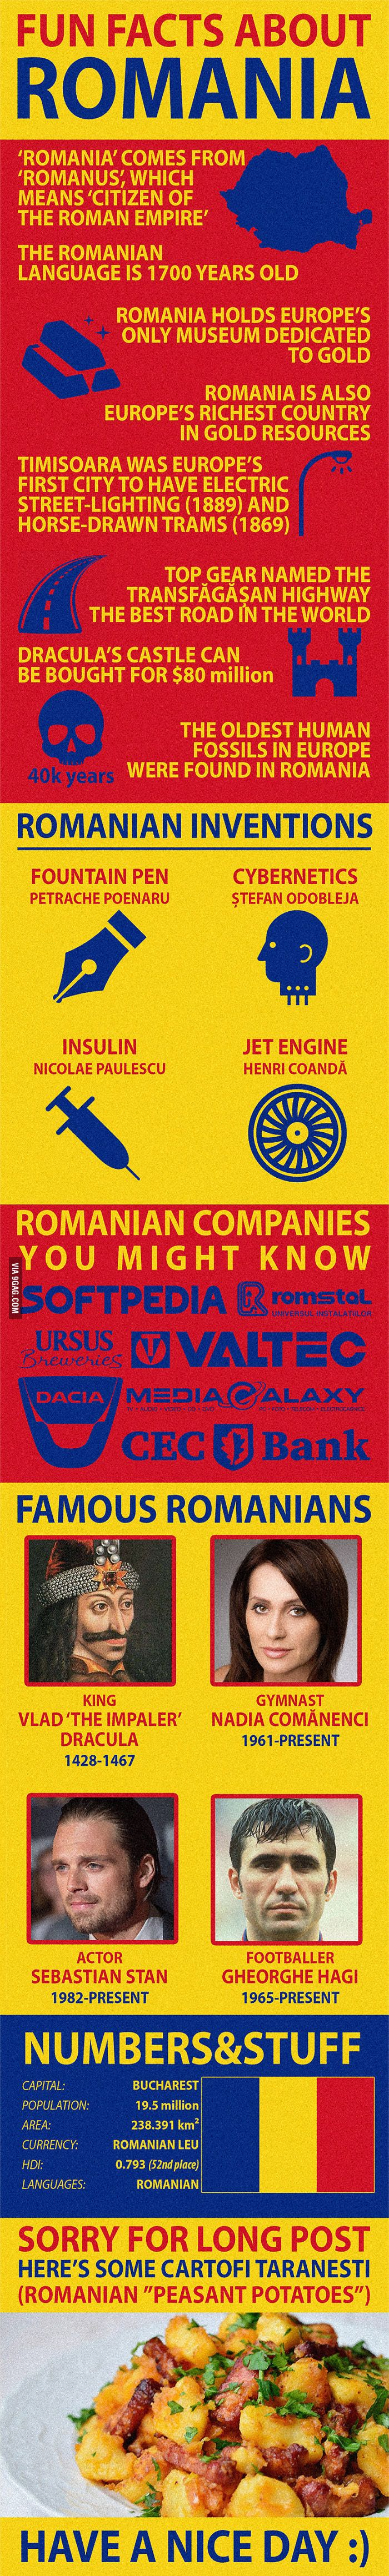 Fun Facts about Romania https://www.youtube.com/channel/UC76YOQIJa6Gej0_FuhRQxJg